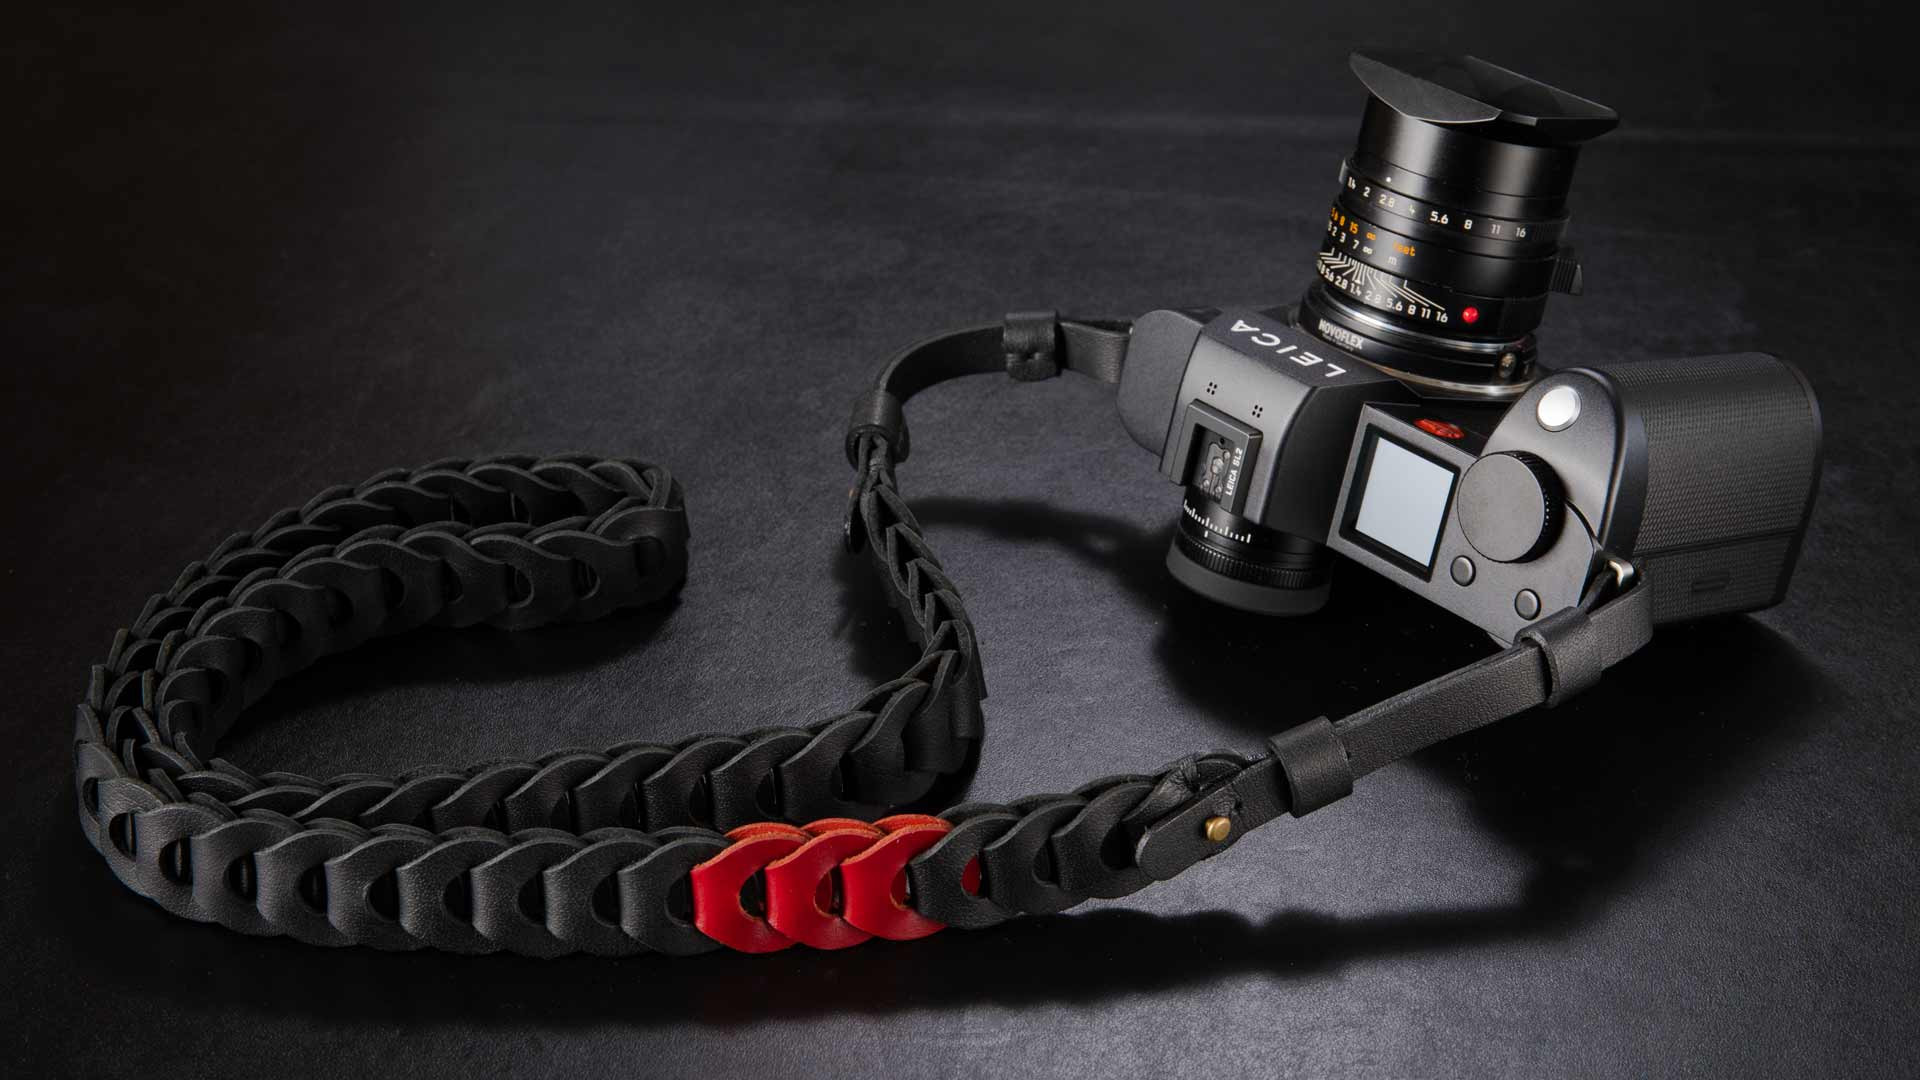 The Limited Edition in black with three red links is R&R's classic design for Leica